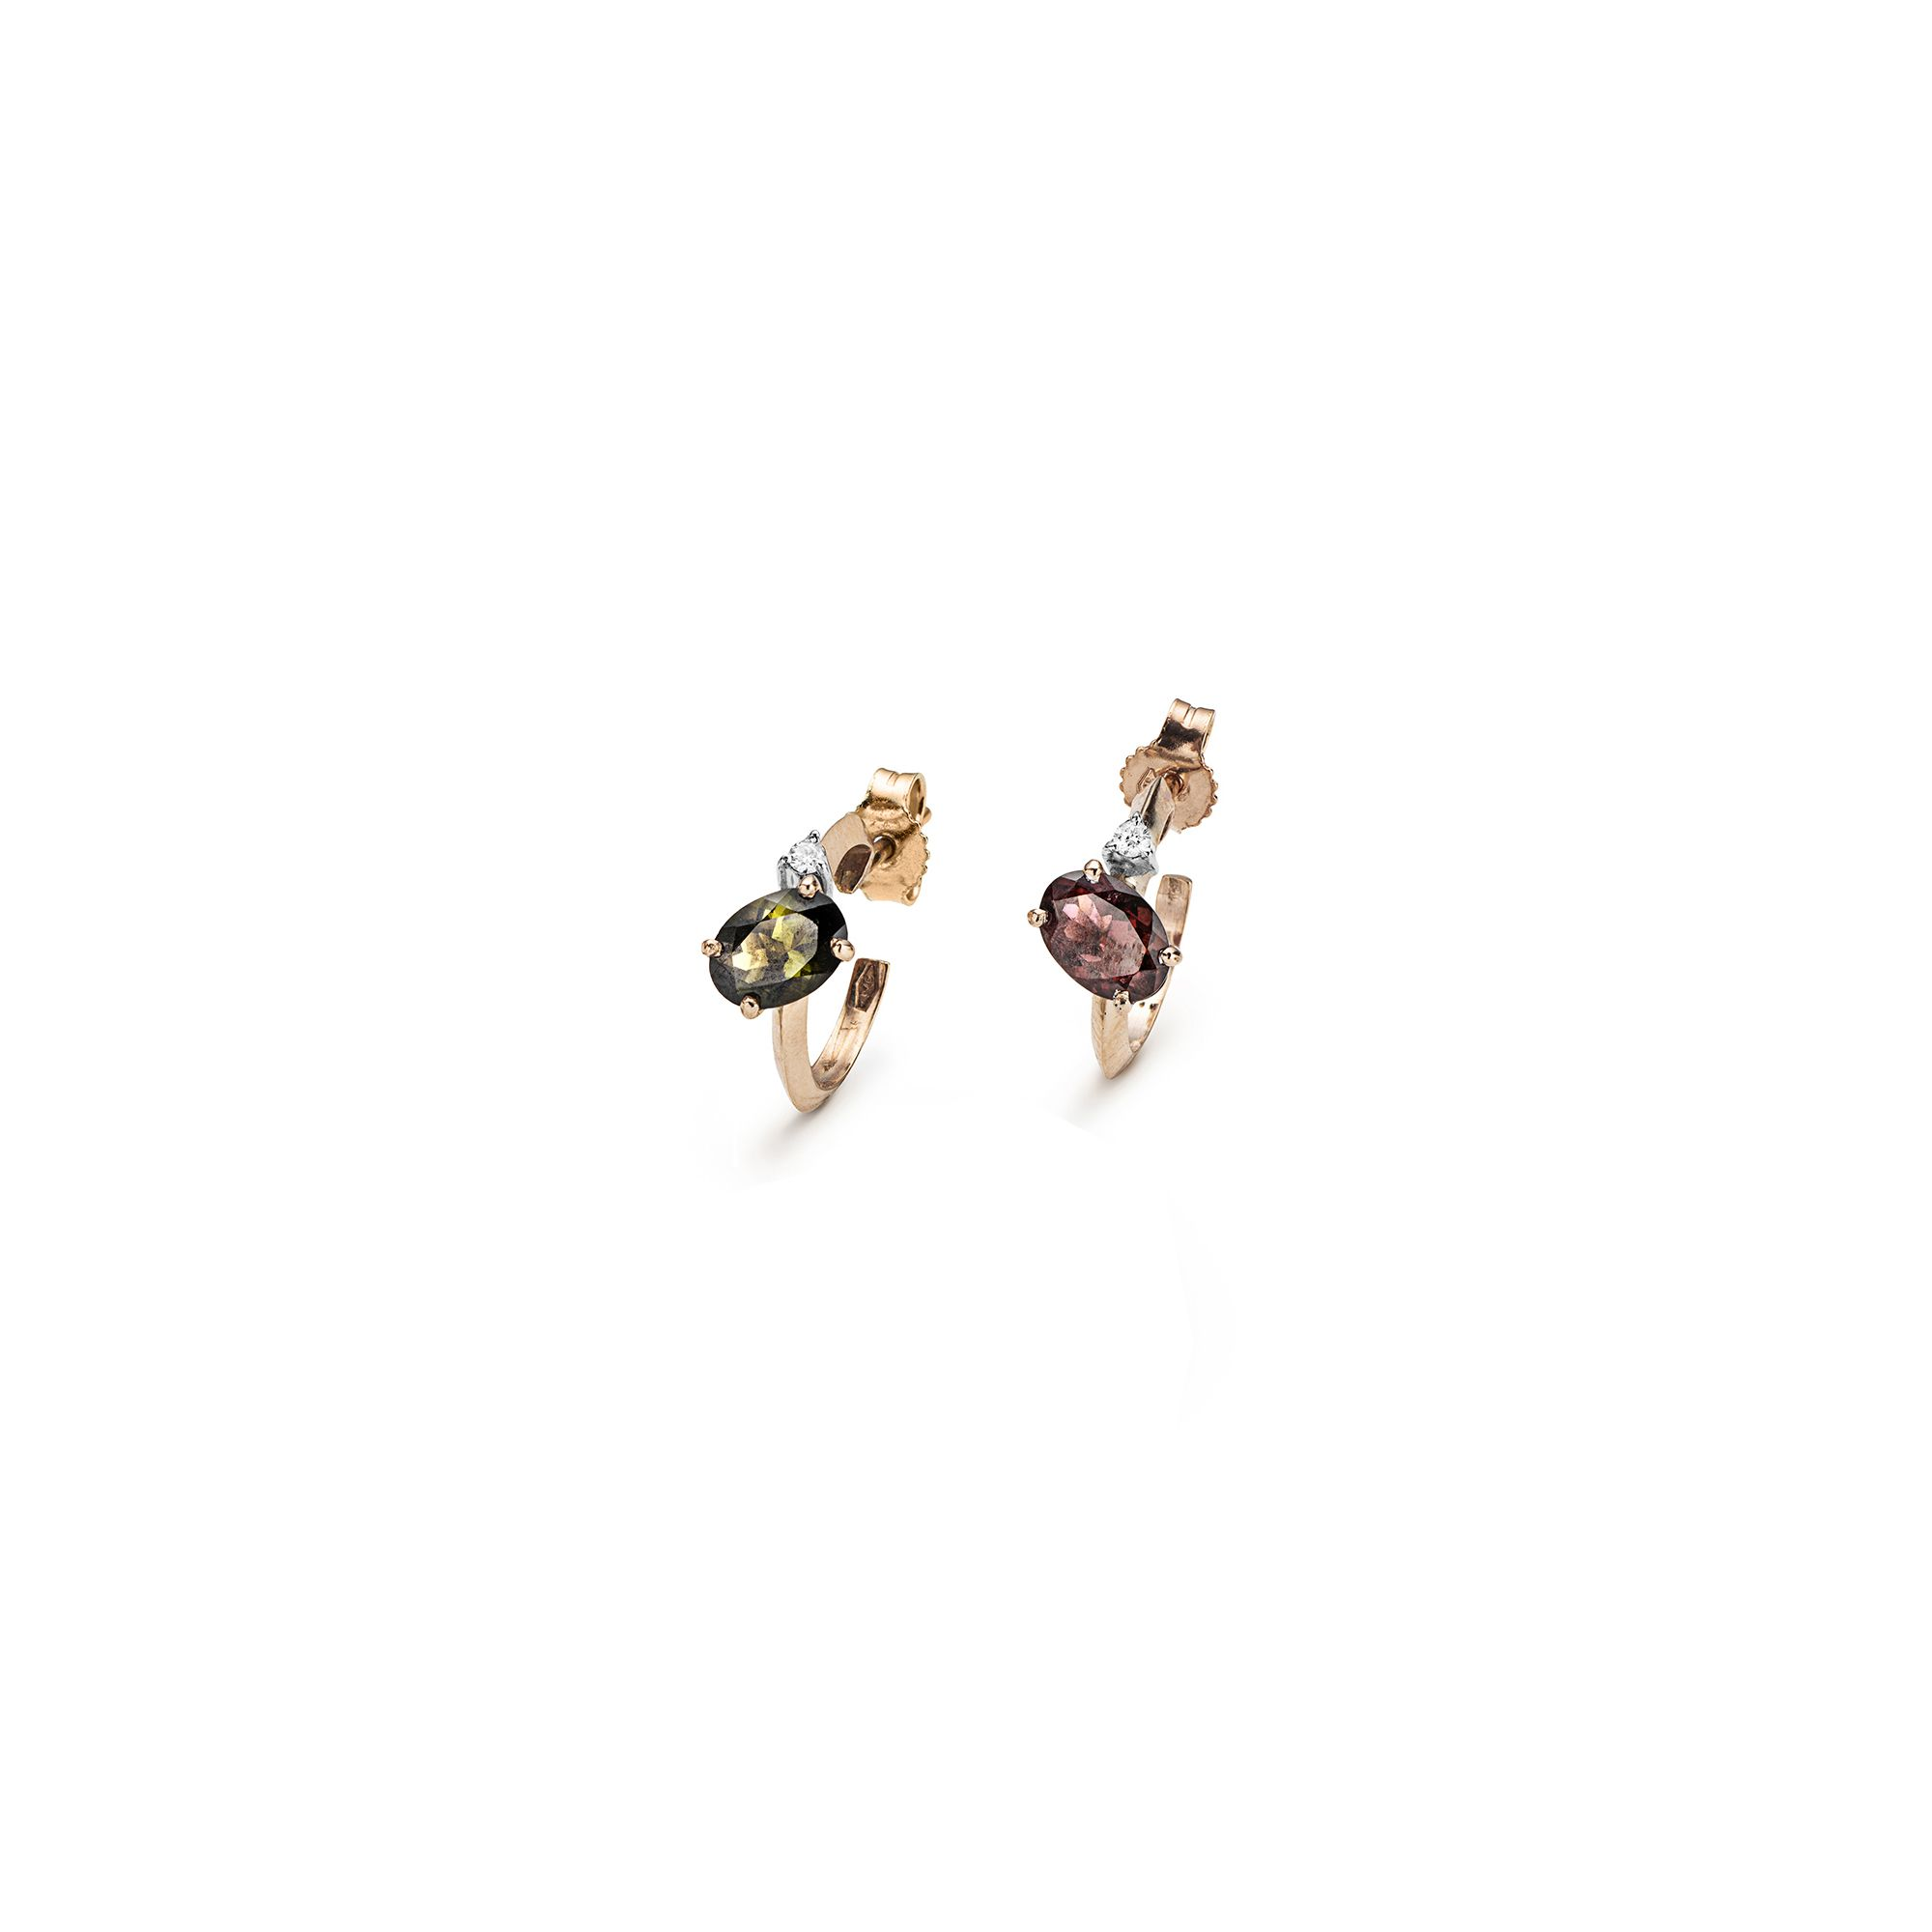 'Balance' hoop earrings with tourmalines Rose gold hoop earrings with tourmalines and diamonds